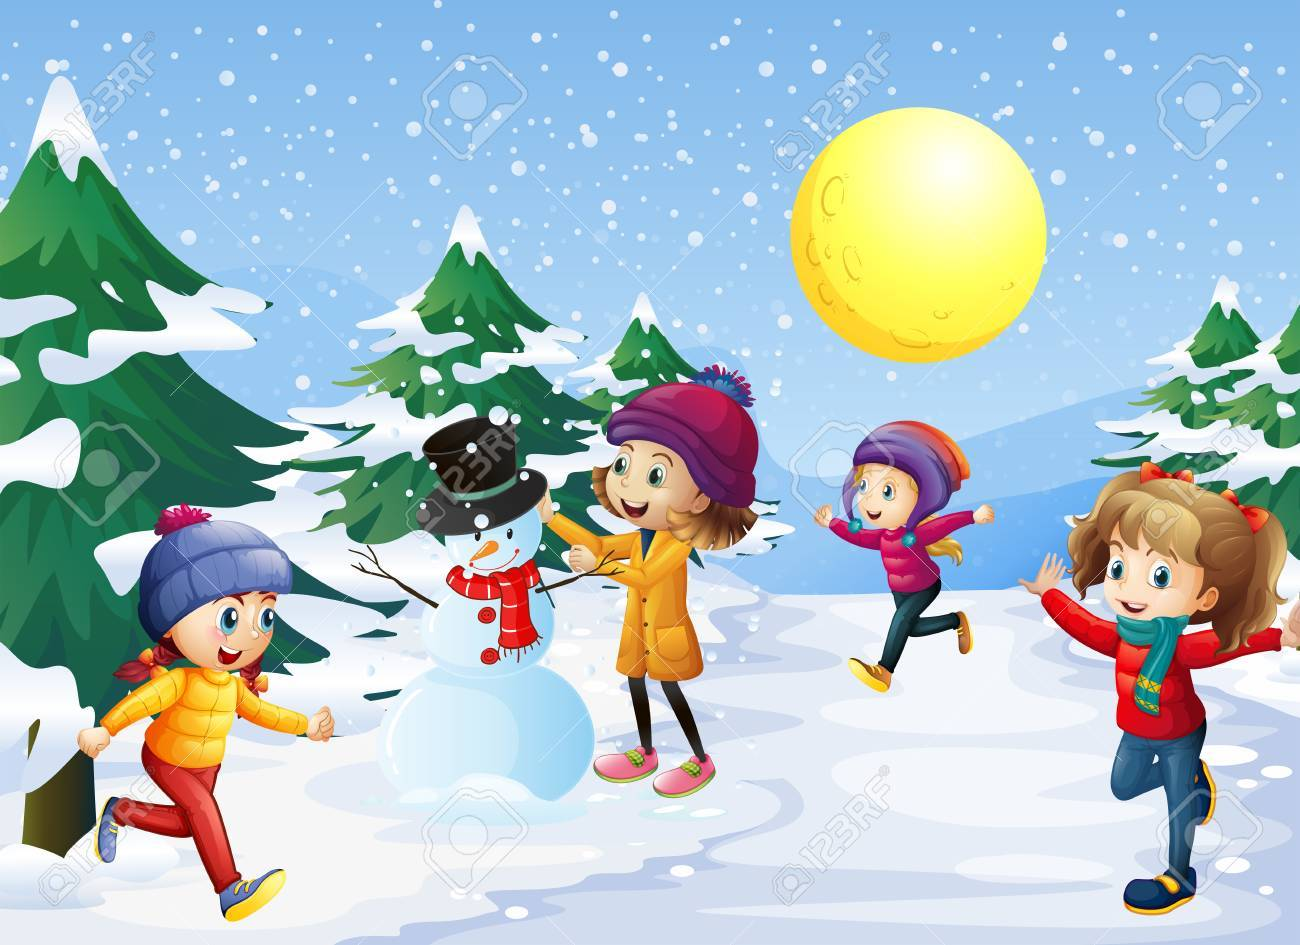 Kids playing in the snow on christmas illustration.